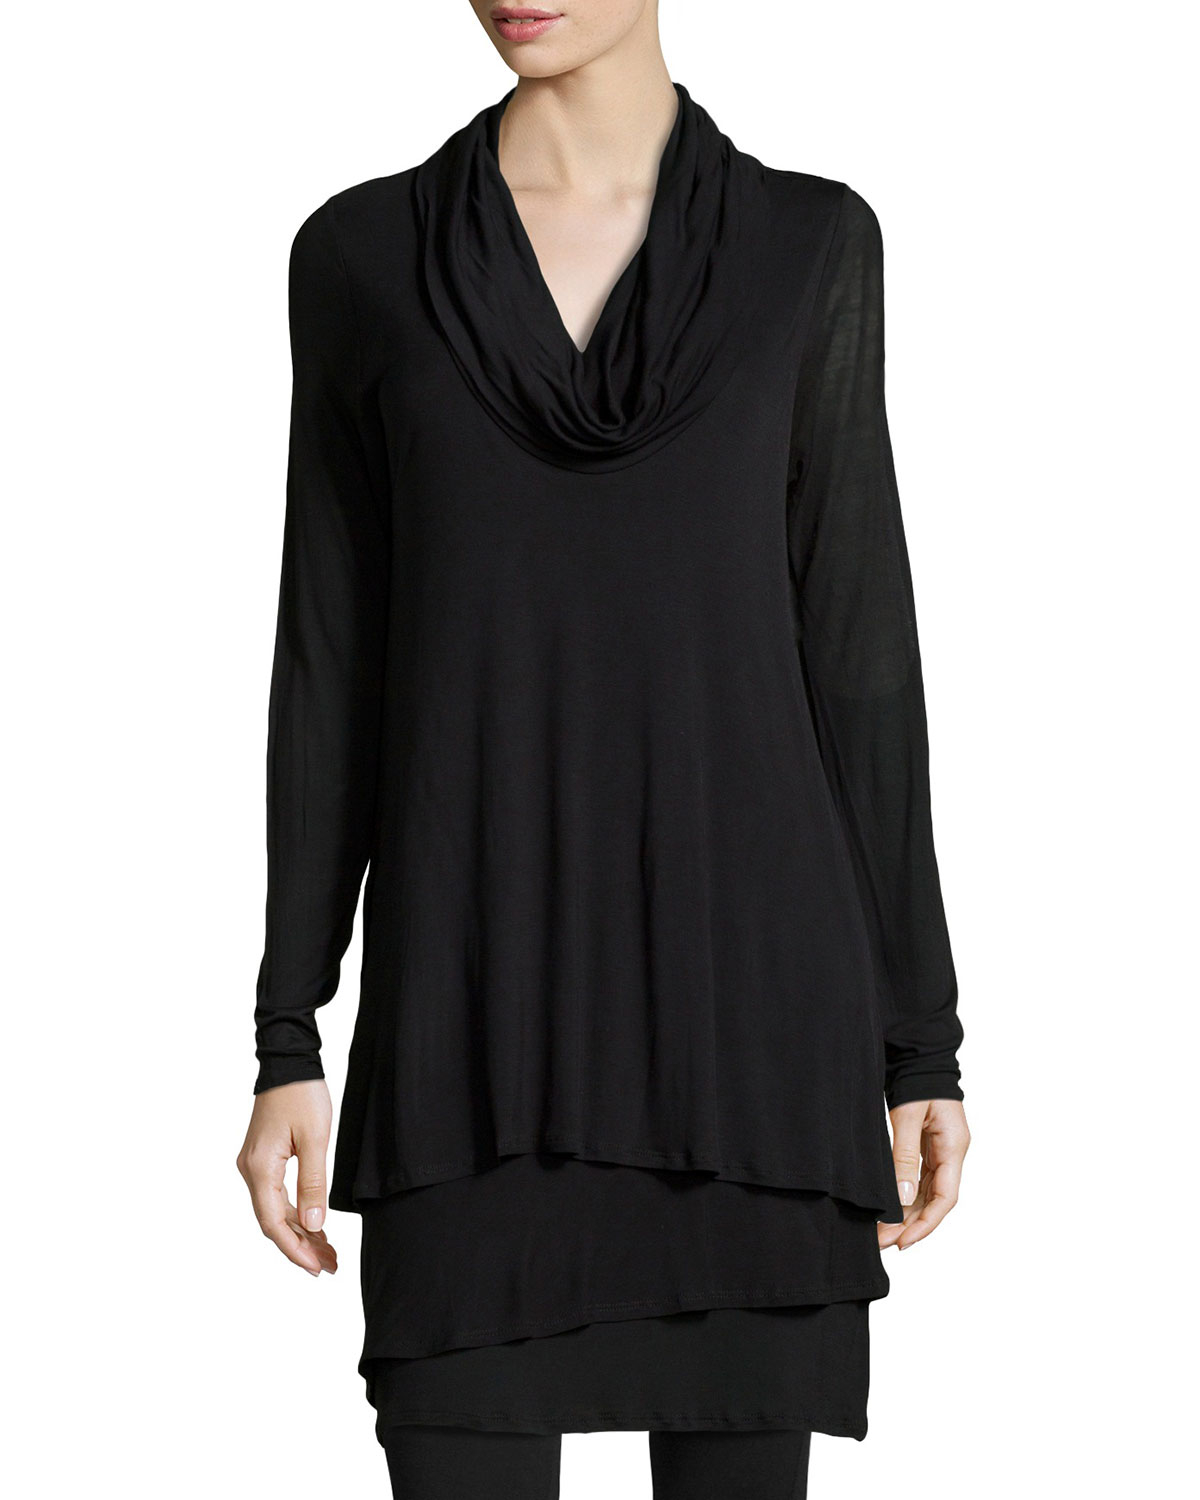 4bd03d6004d32 Lyst - Neiman Marcus Cowl-Neck Tiered Tunic in Black